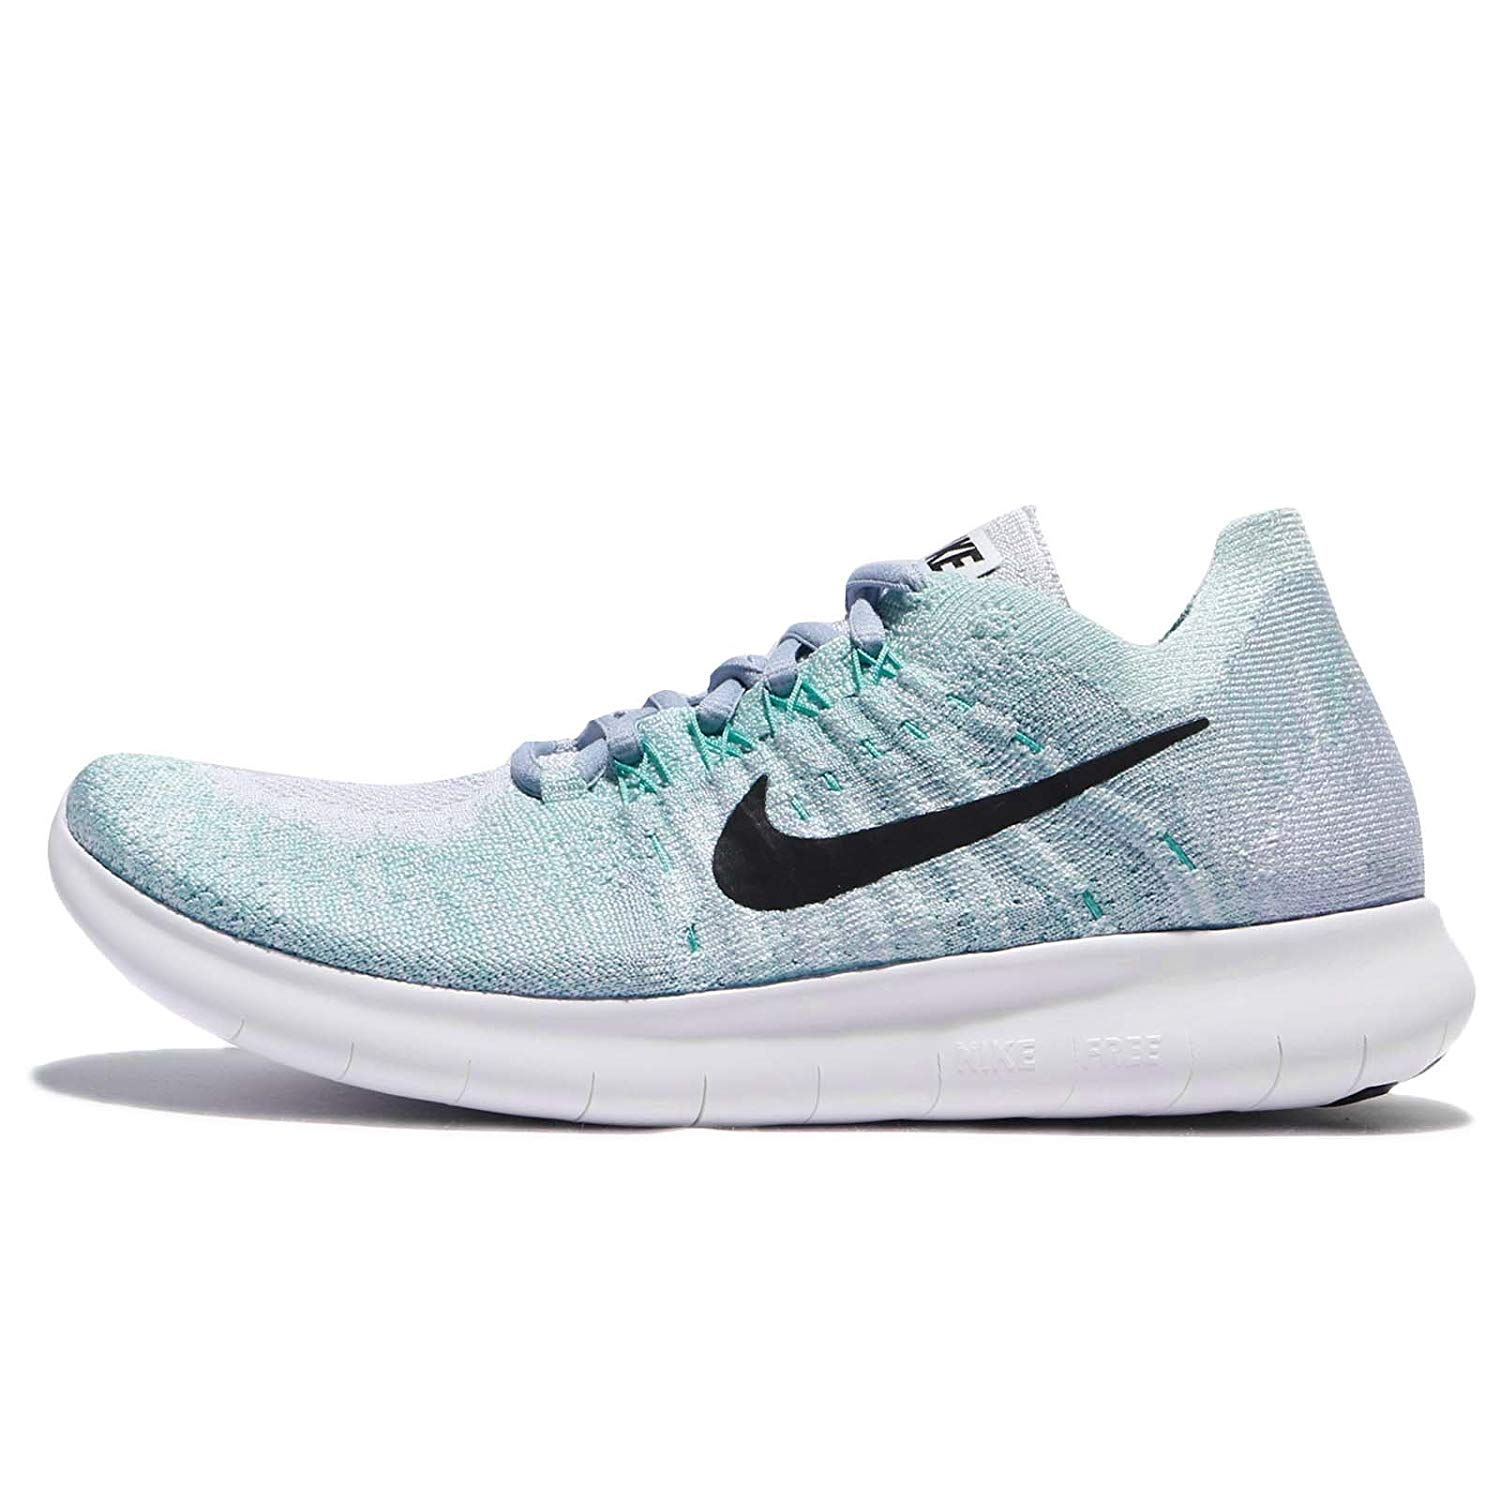 new concept 0224c d8a7b Details about Nike Womens Free RN Flyknit 2017 Fabric Low Top Lace Up  Running Sneaker